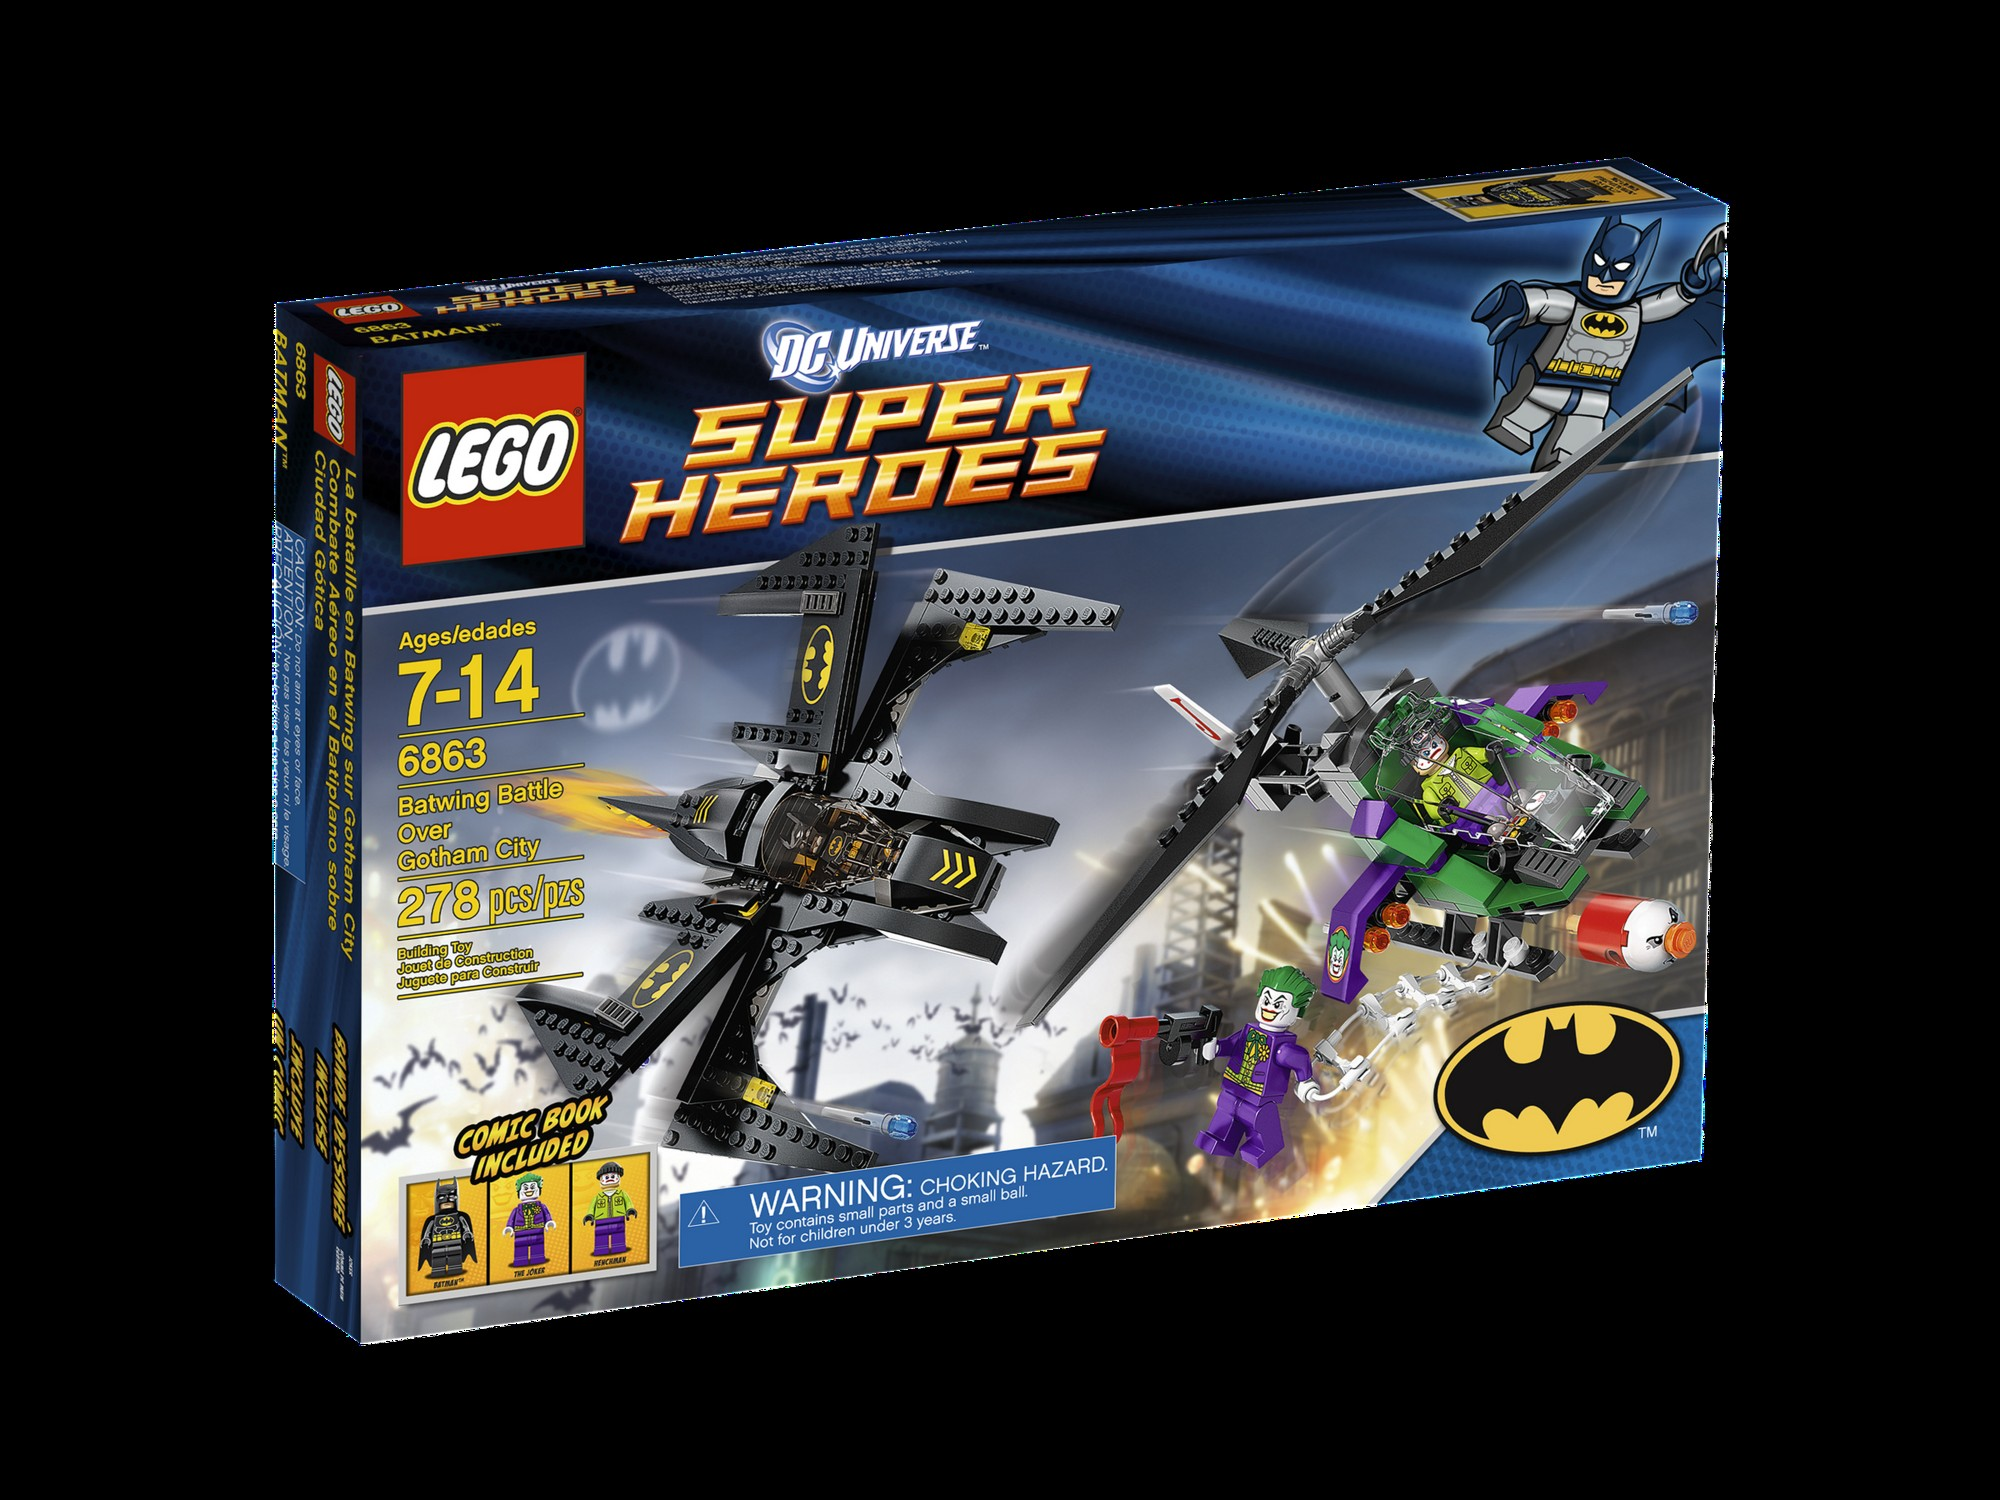 Lego March Calendar Más Recientemente Liberado Review 6863 Batwing Battle Over Gotham City Brickipedia Of Lego March Calendar Recientes Jarrod11 Snowboundnh On Pinterest